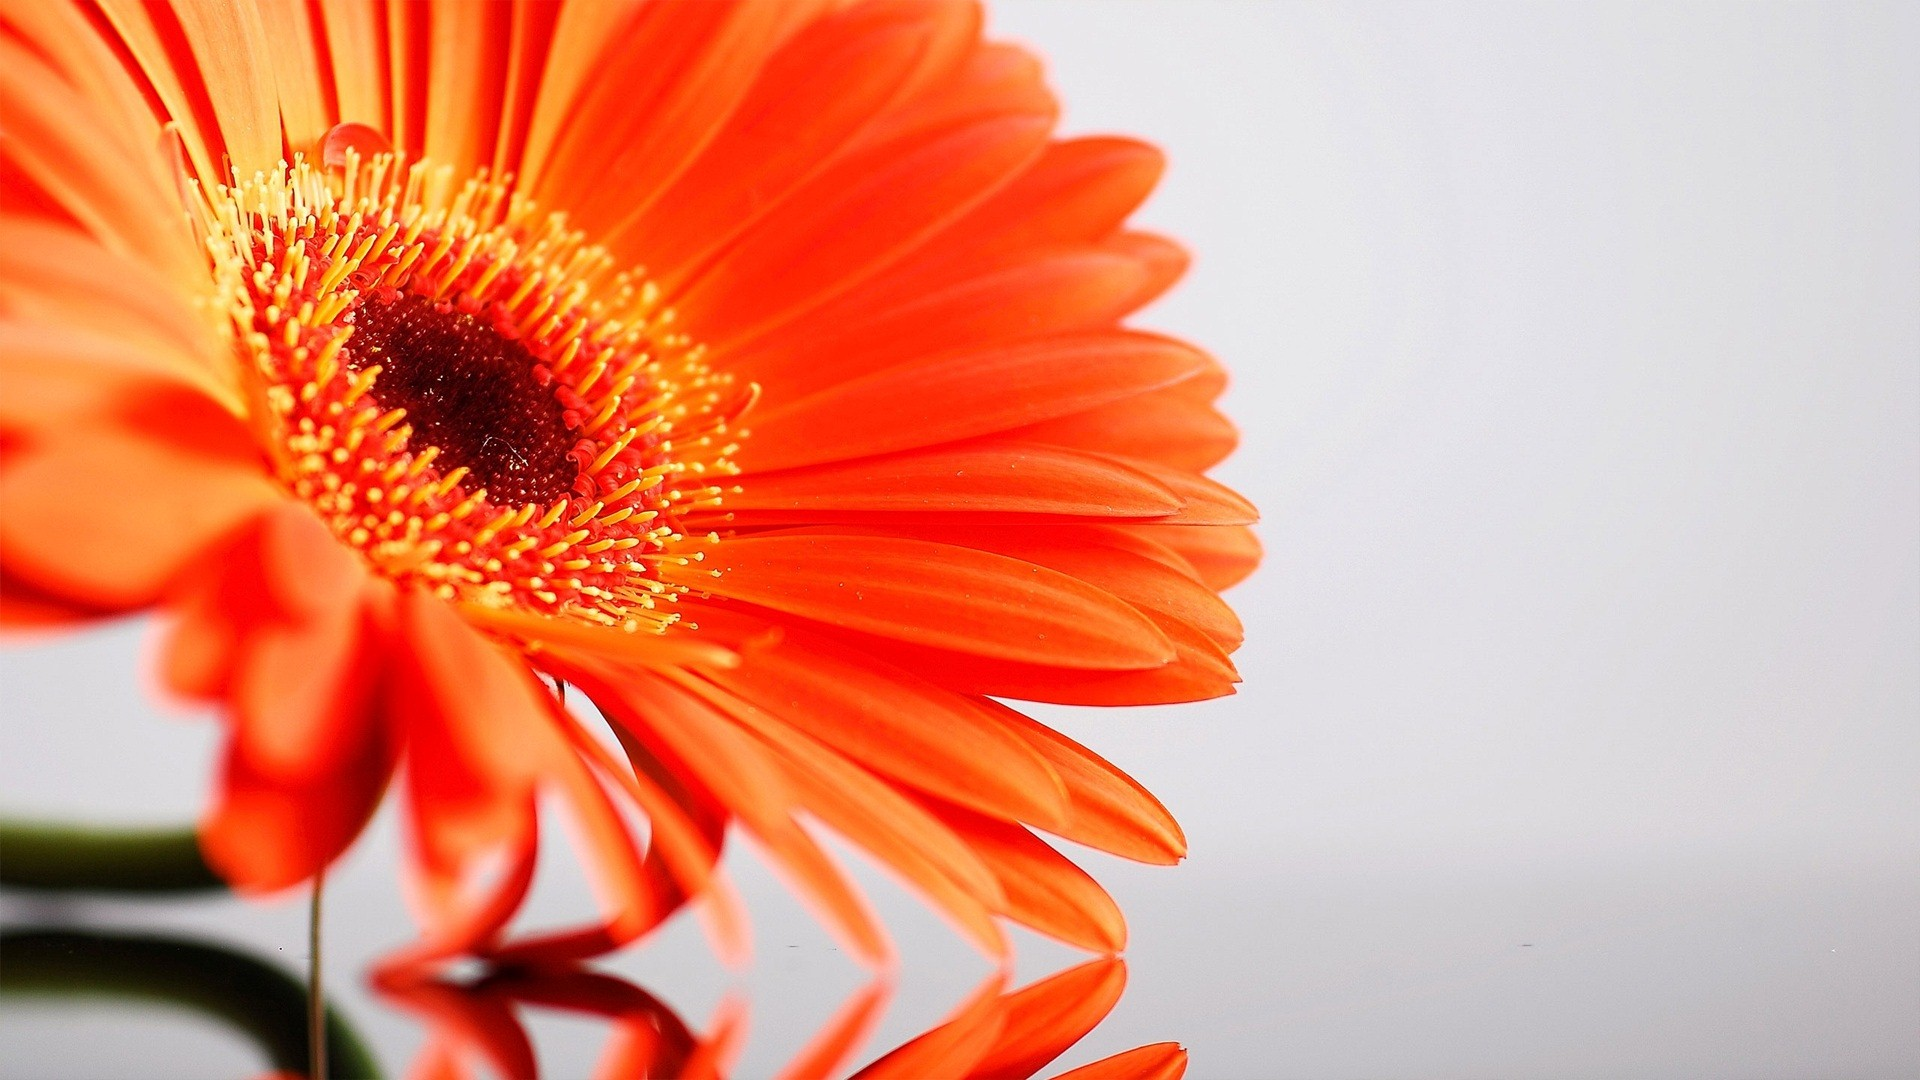 Amazing Sunflower HD Desktop Background Wallpapers for